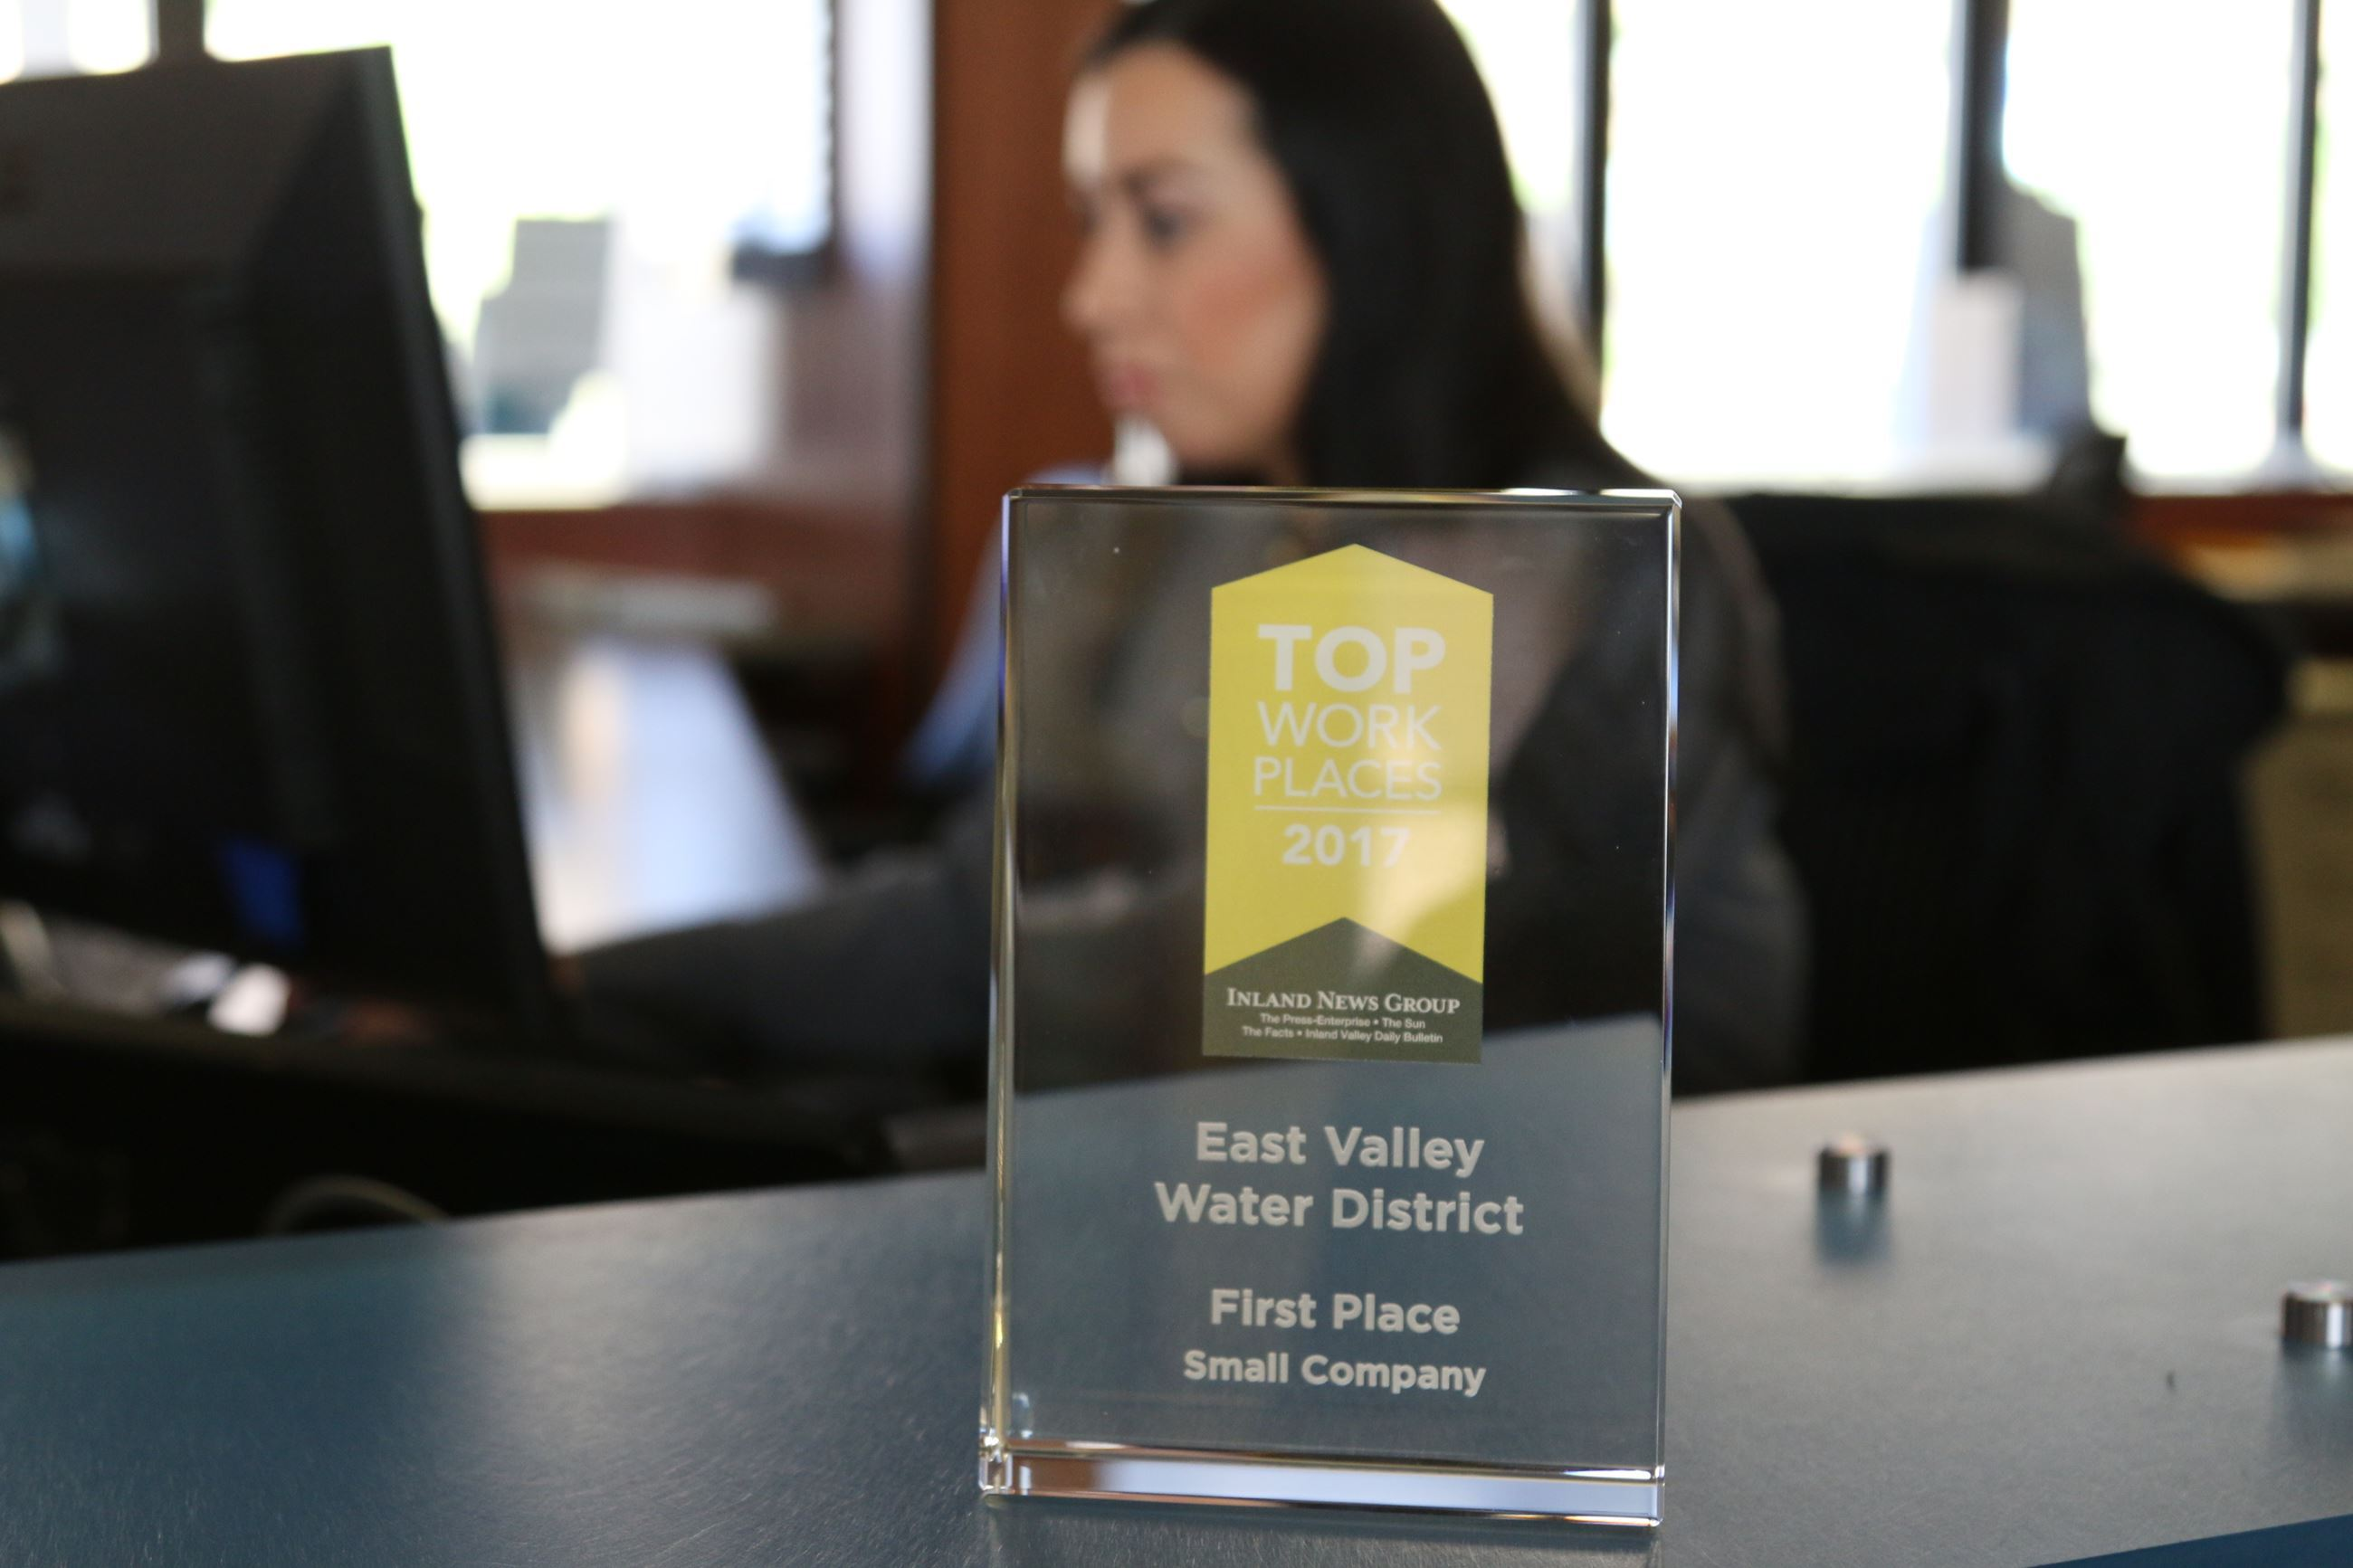 East Valley Water District First Place Small Company Award